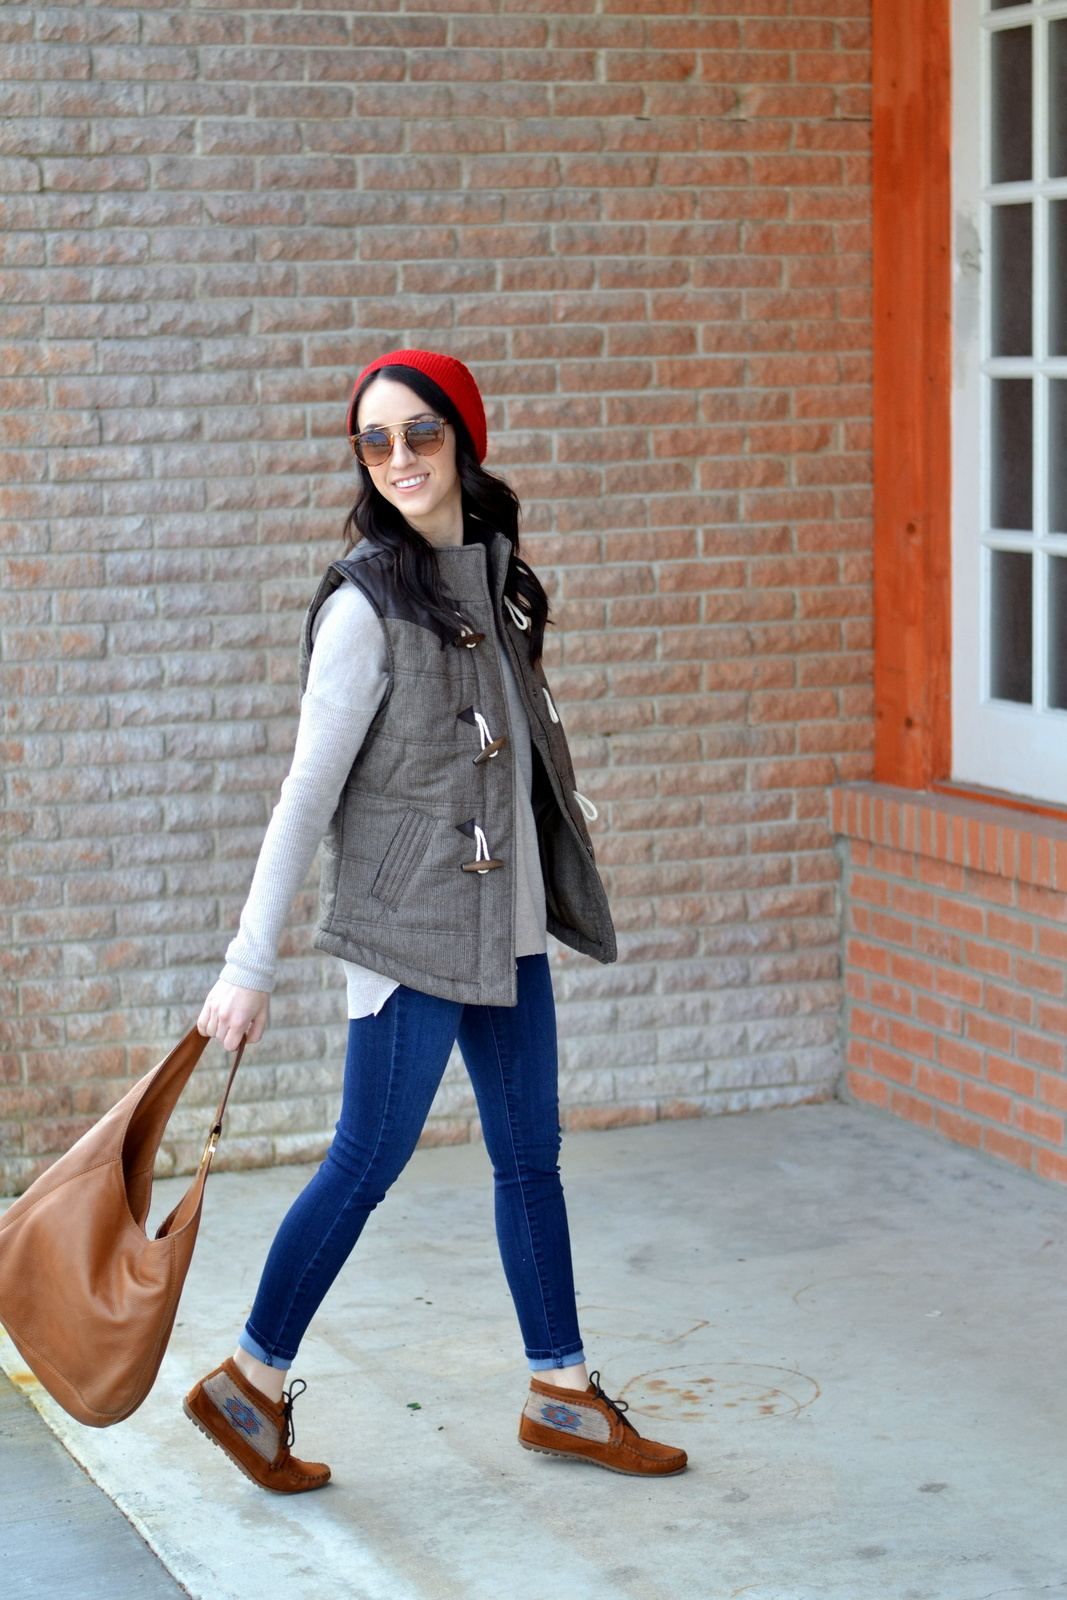 Styling a Beanie and Vest